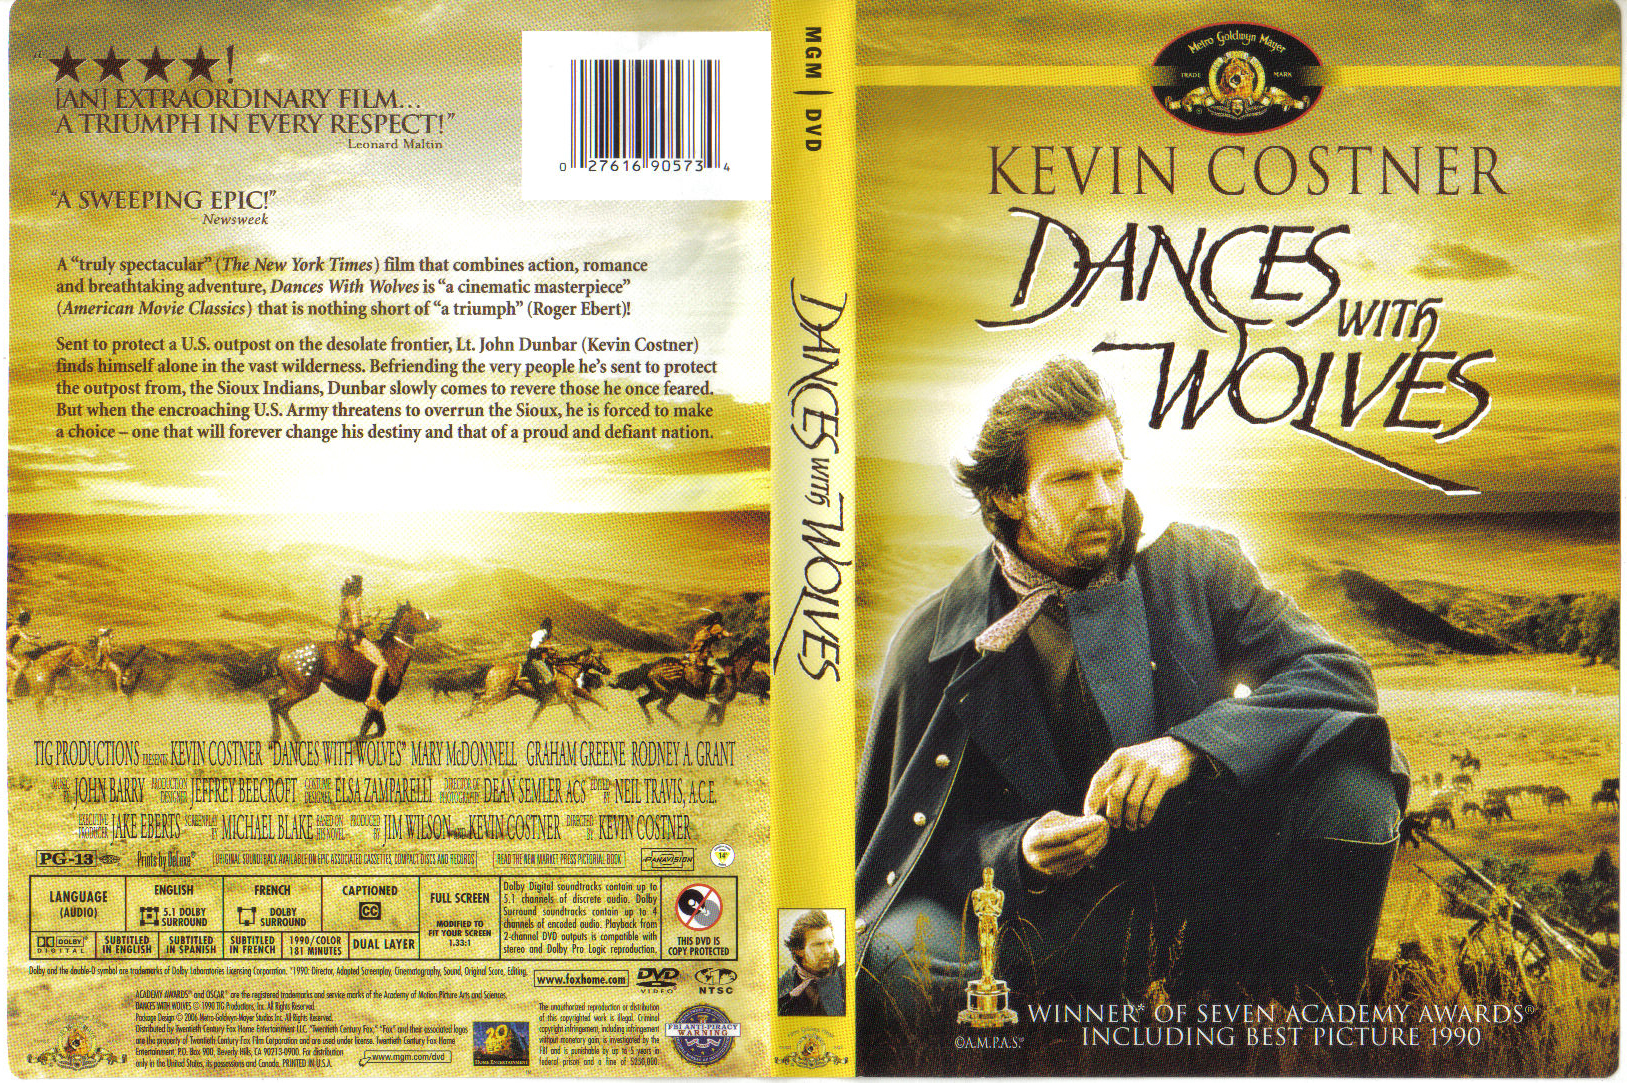 covers box sk dances with wolves v1 imdb dl5 high quality